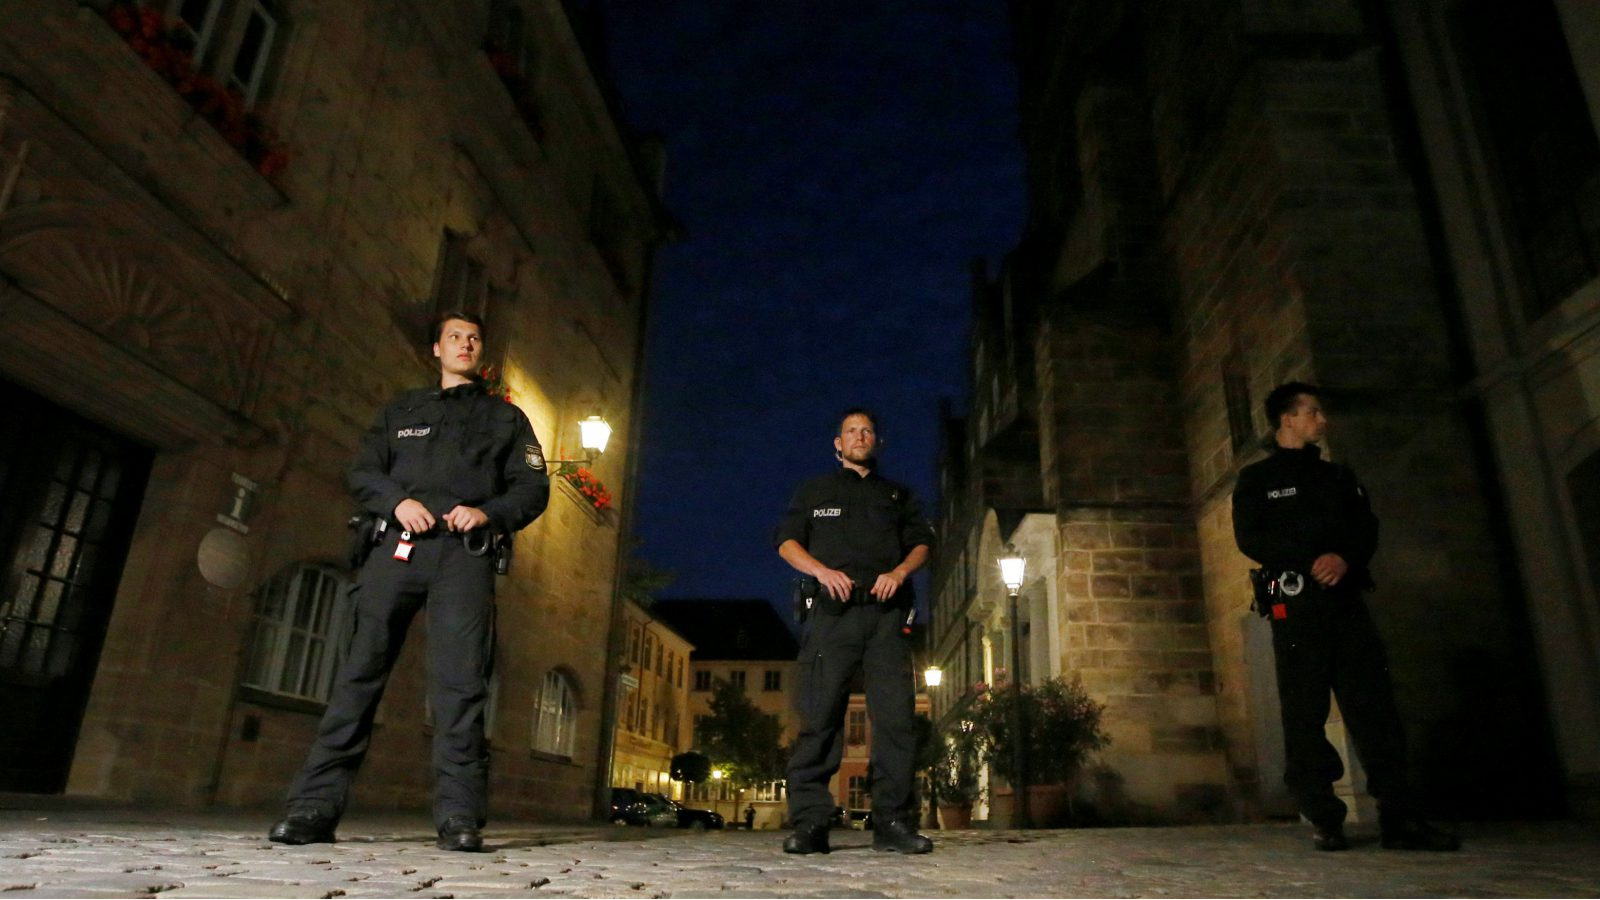 ansbach-police-germany-reuters